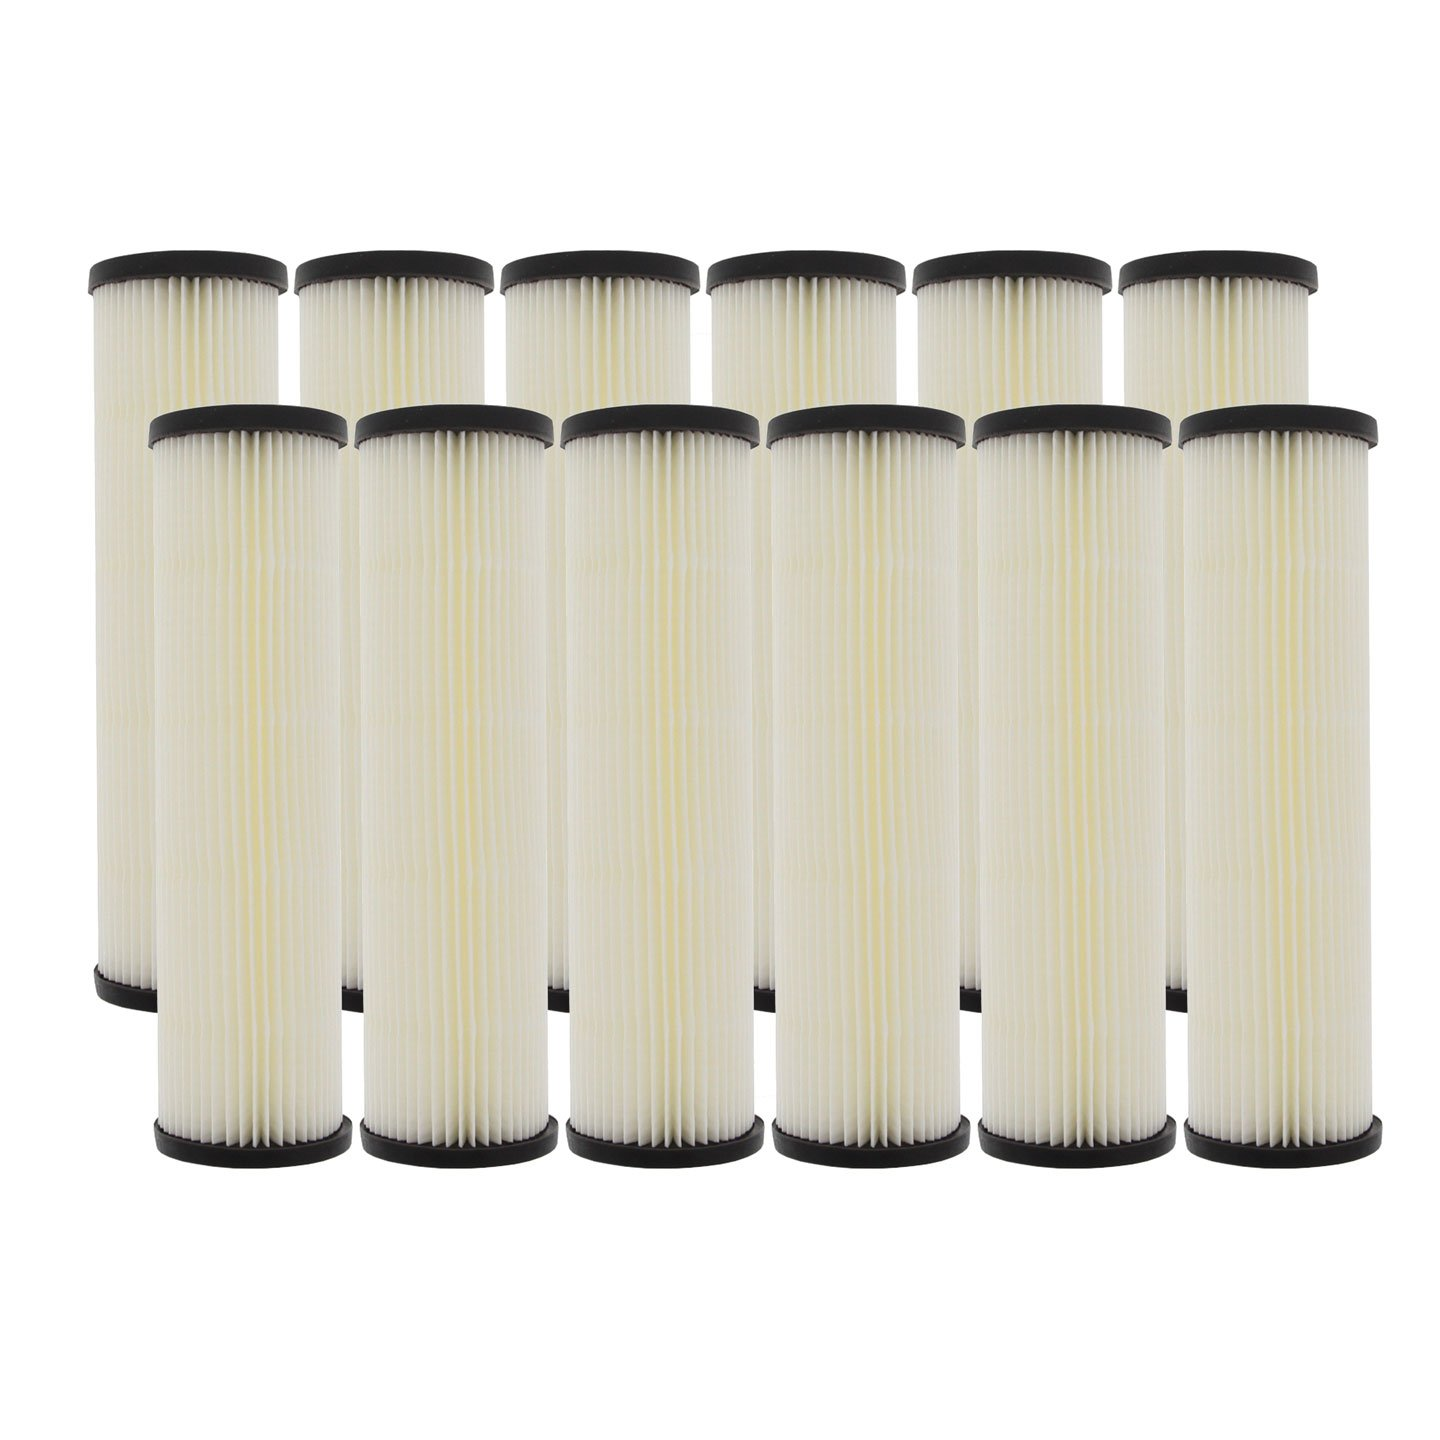 Pentek S1 20 Micron Standard 10 x 2.5 Inch Pleated Sediment Water Filter 12 Pack by Pentek